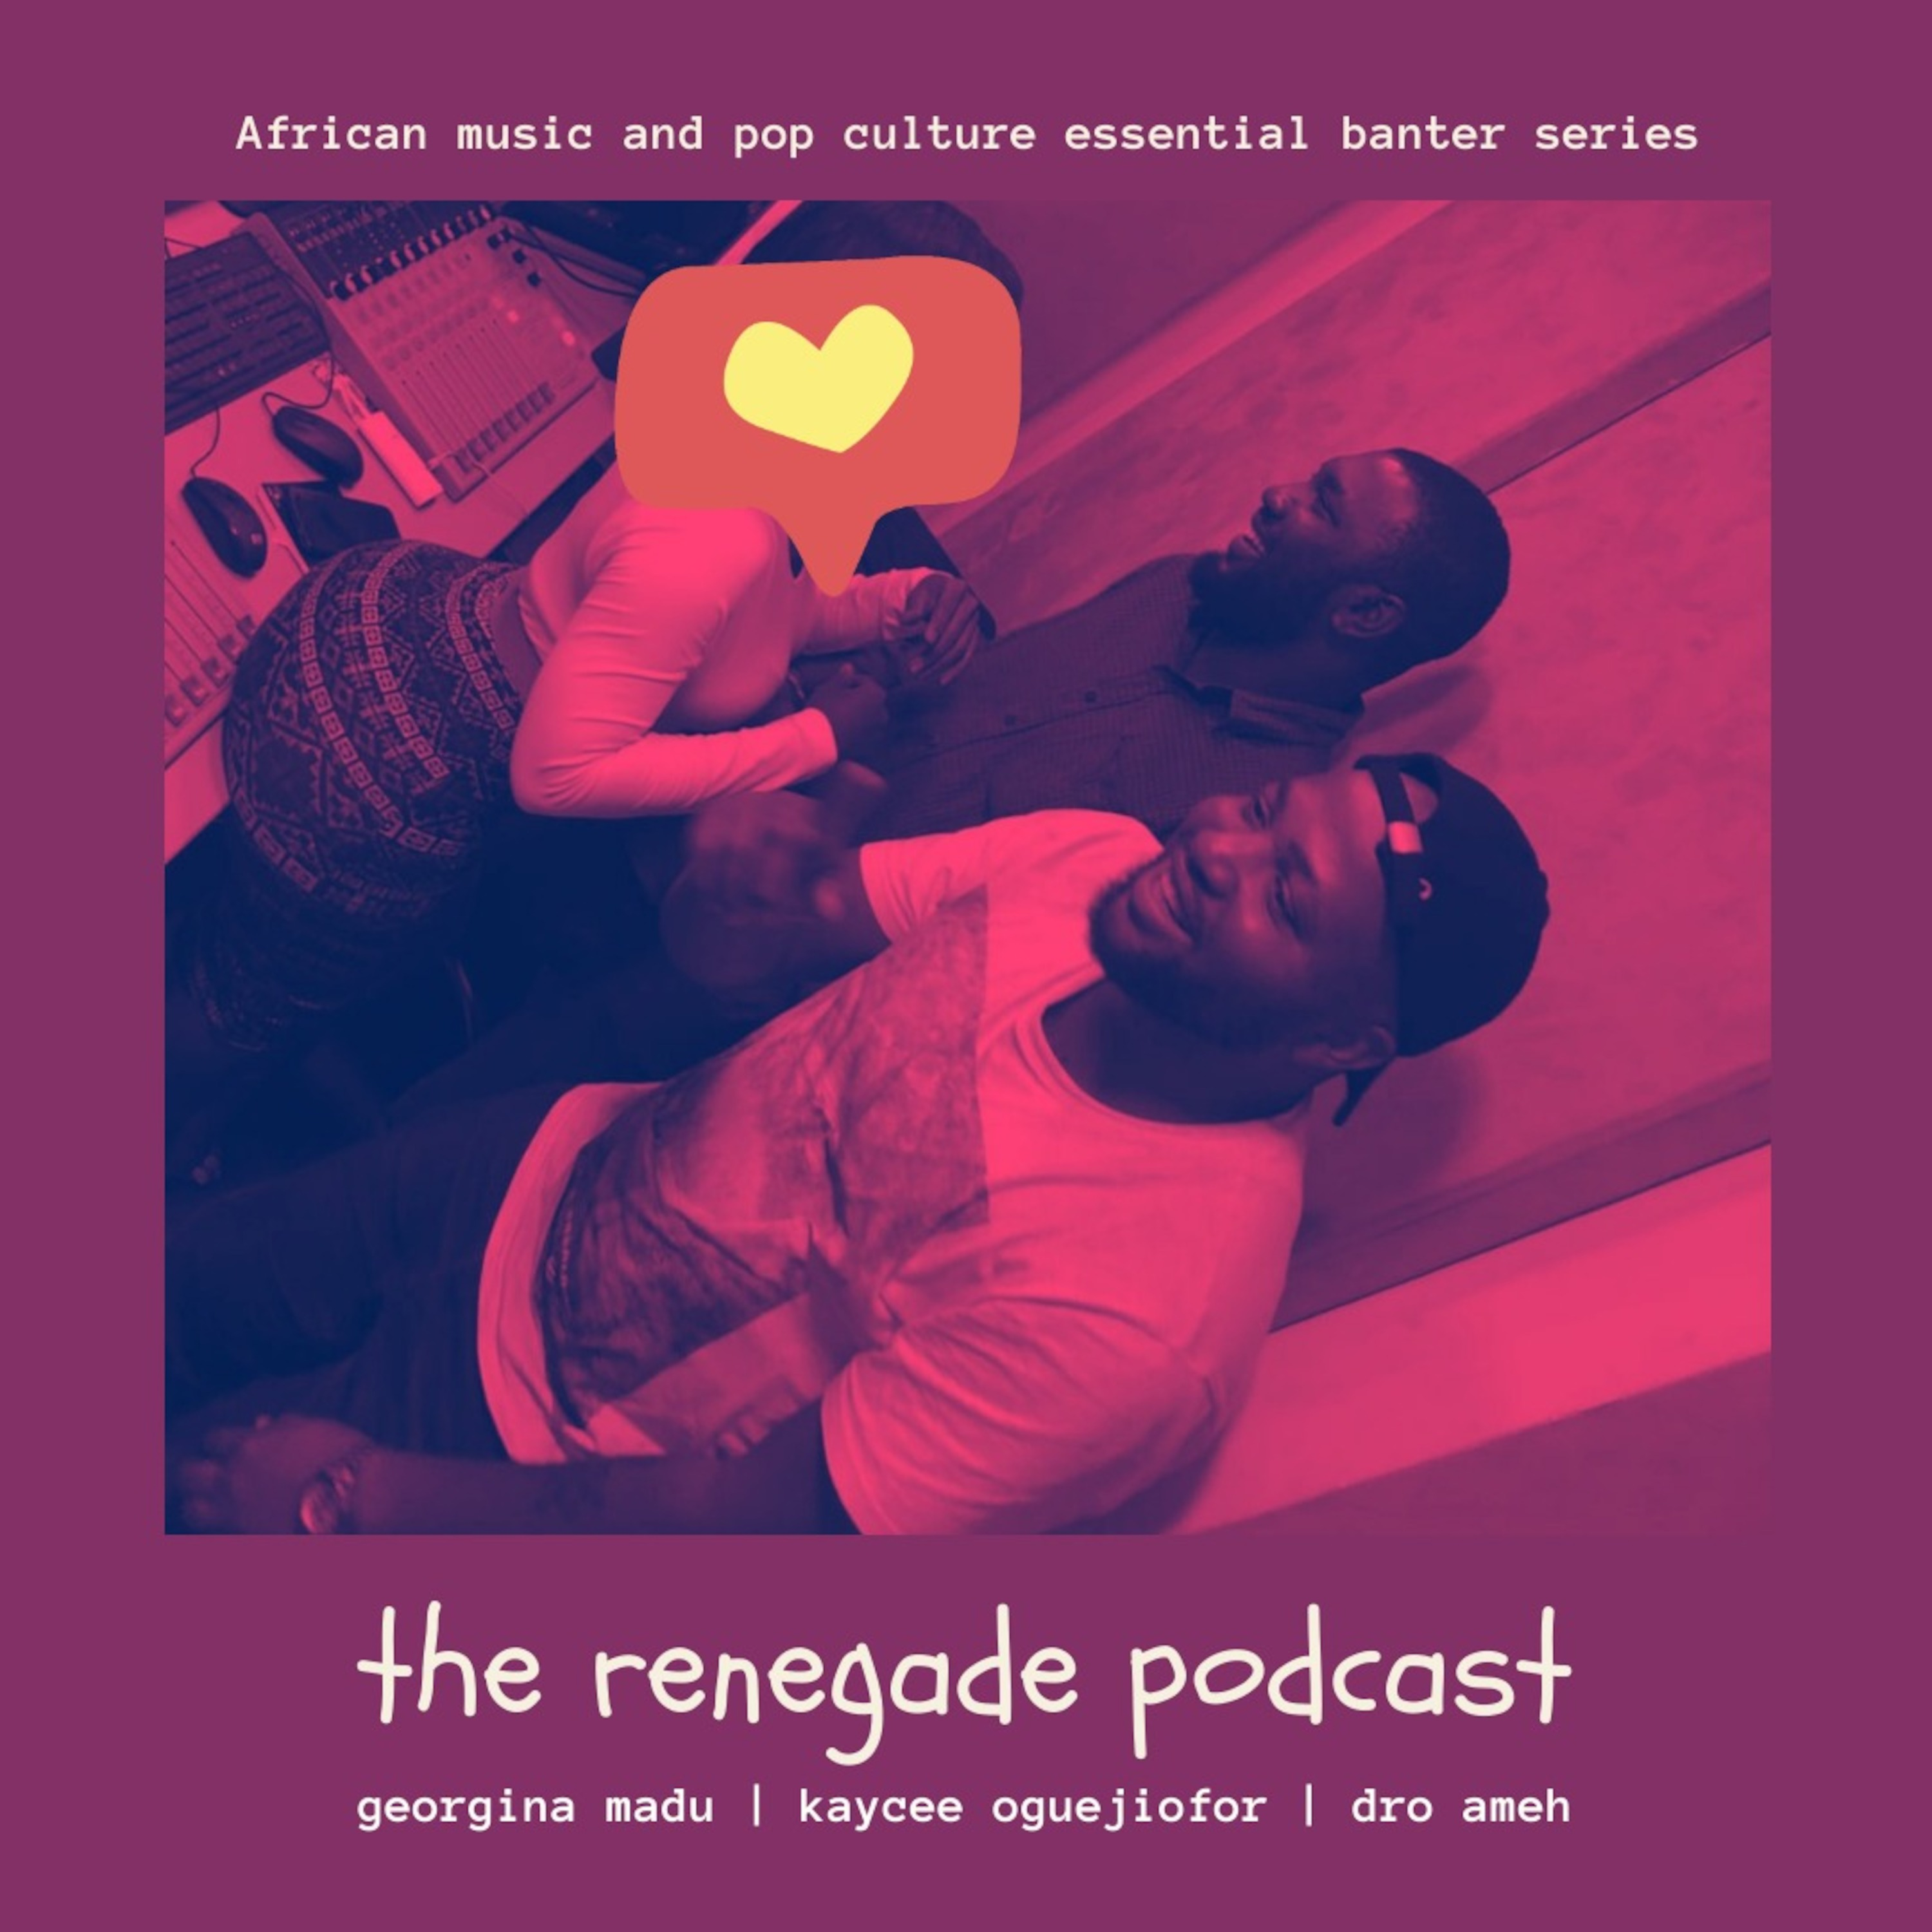 The Renegade Podcast